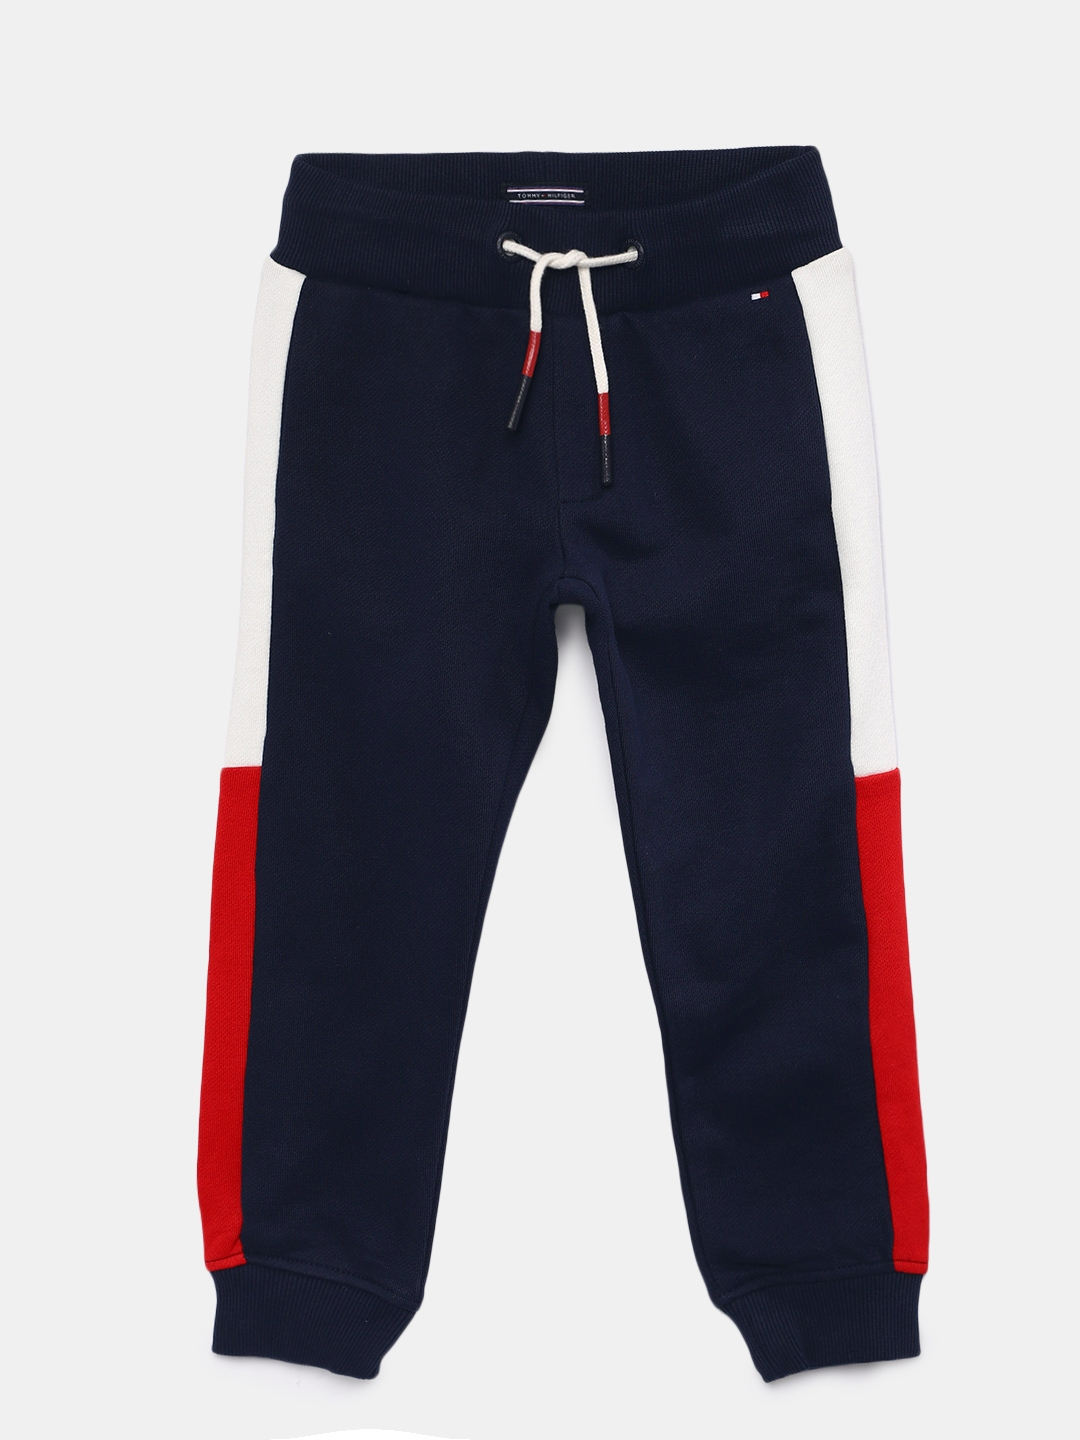 a2ab96b17c57 Buy Tommy Hilfiger Boys Navy Blue Joggers - Track Pants for Boys ...